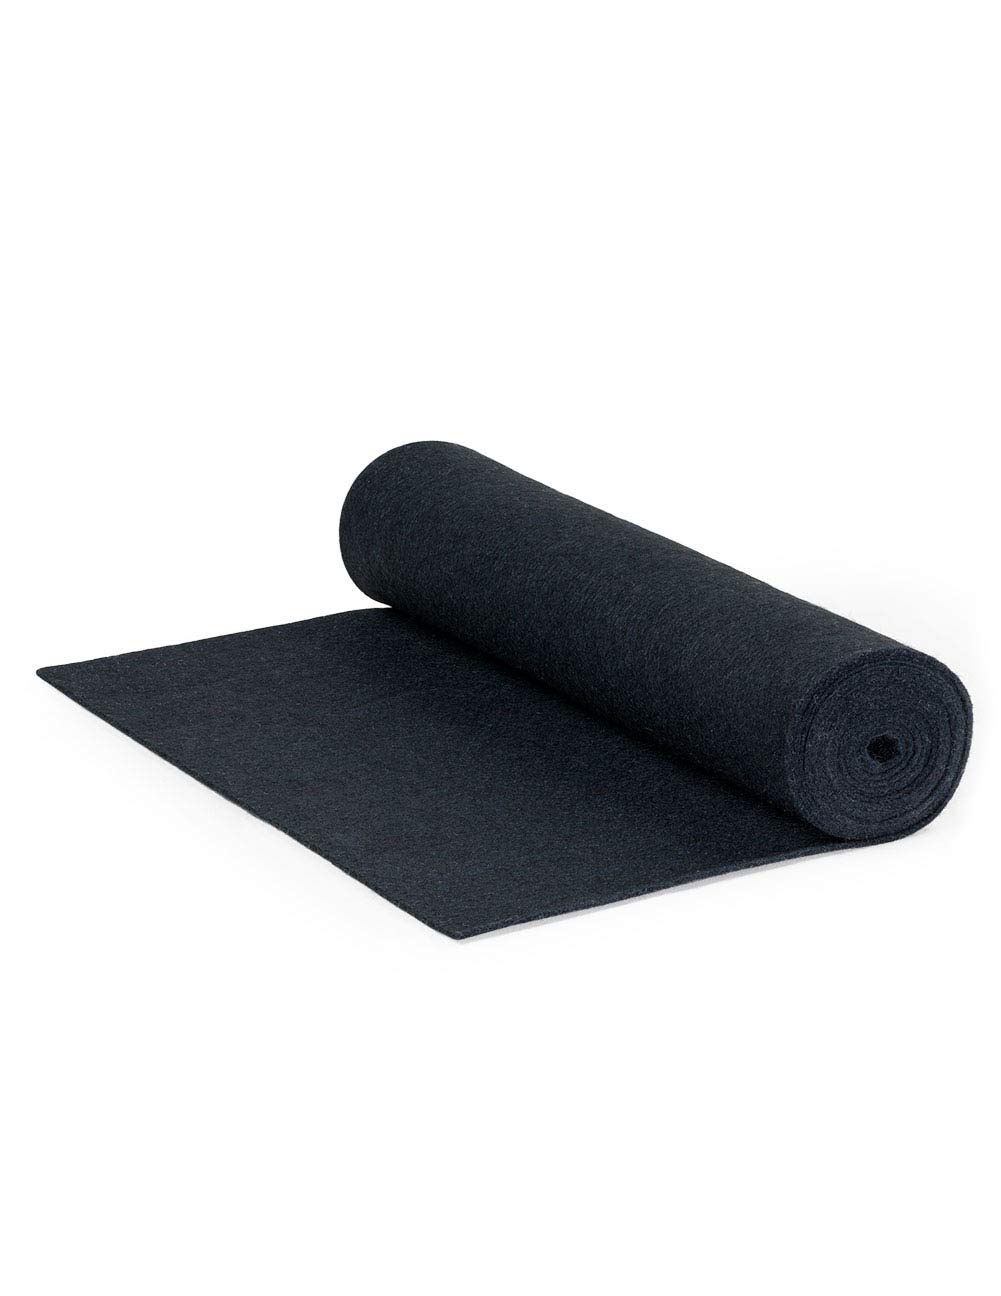 F-55 Industrial Felt by the Foot - 72'' Wide x 15 ft Long x 1/16'' Thick - Black